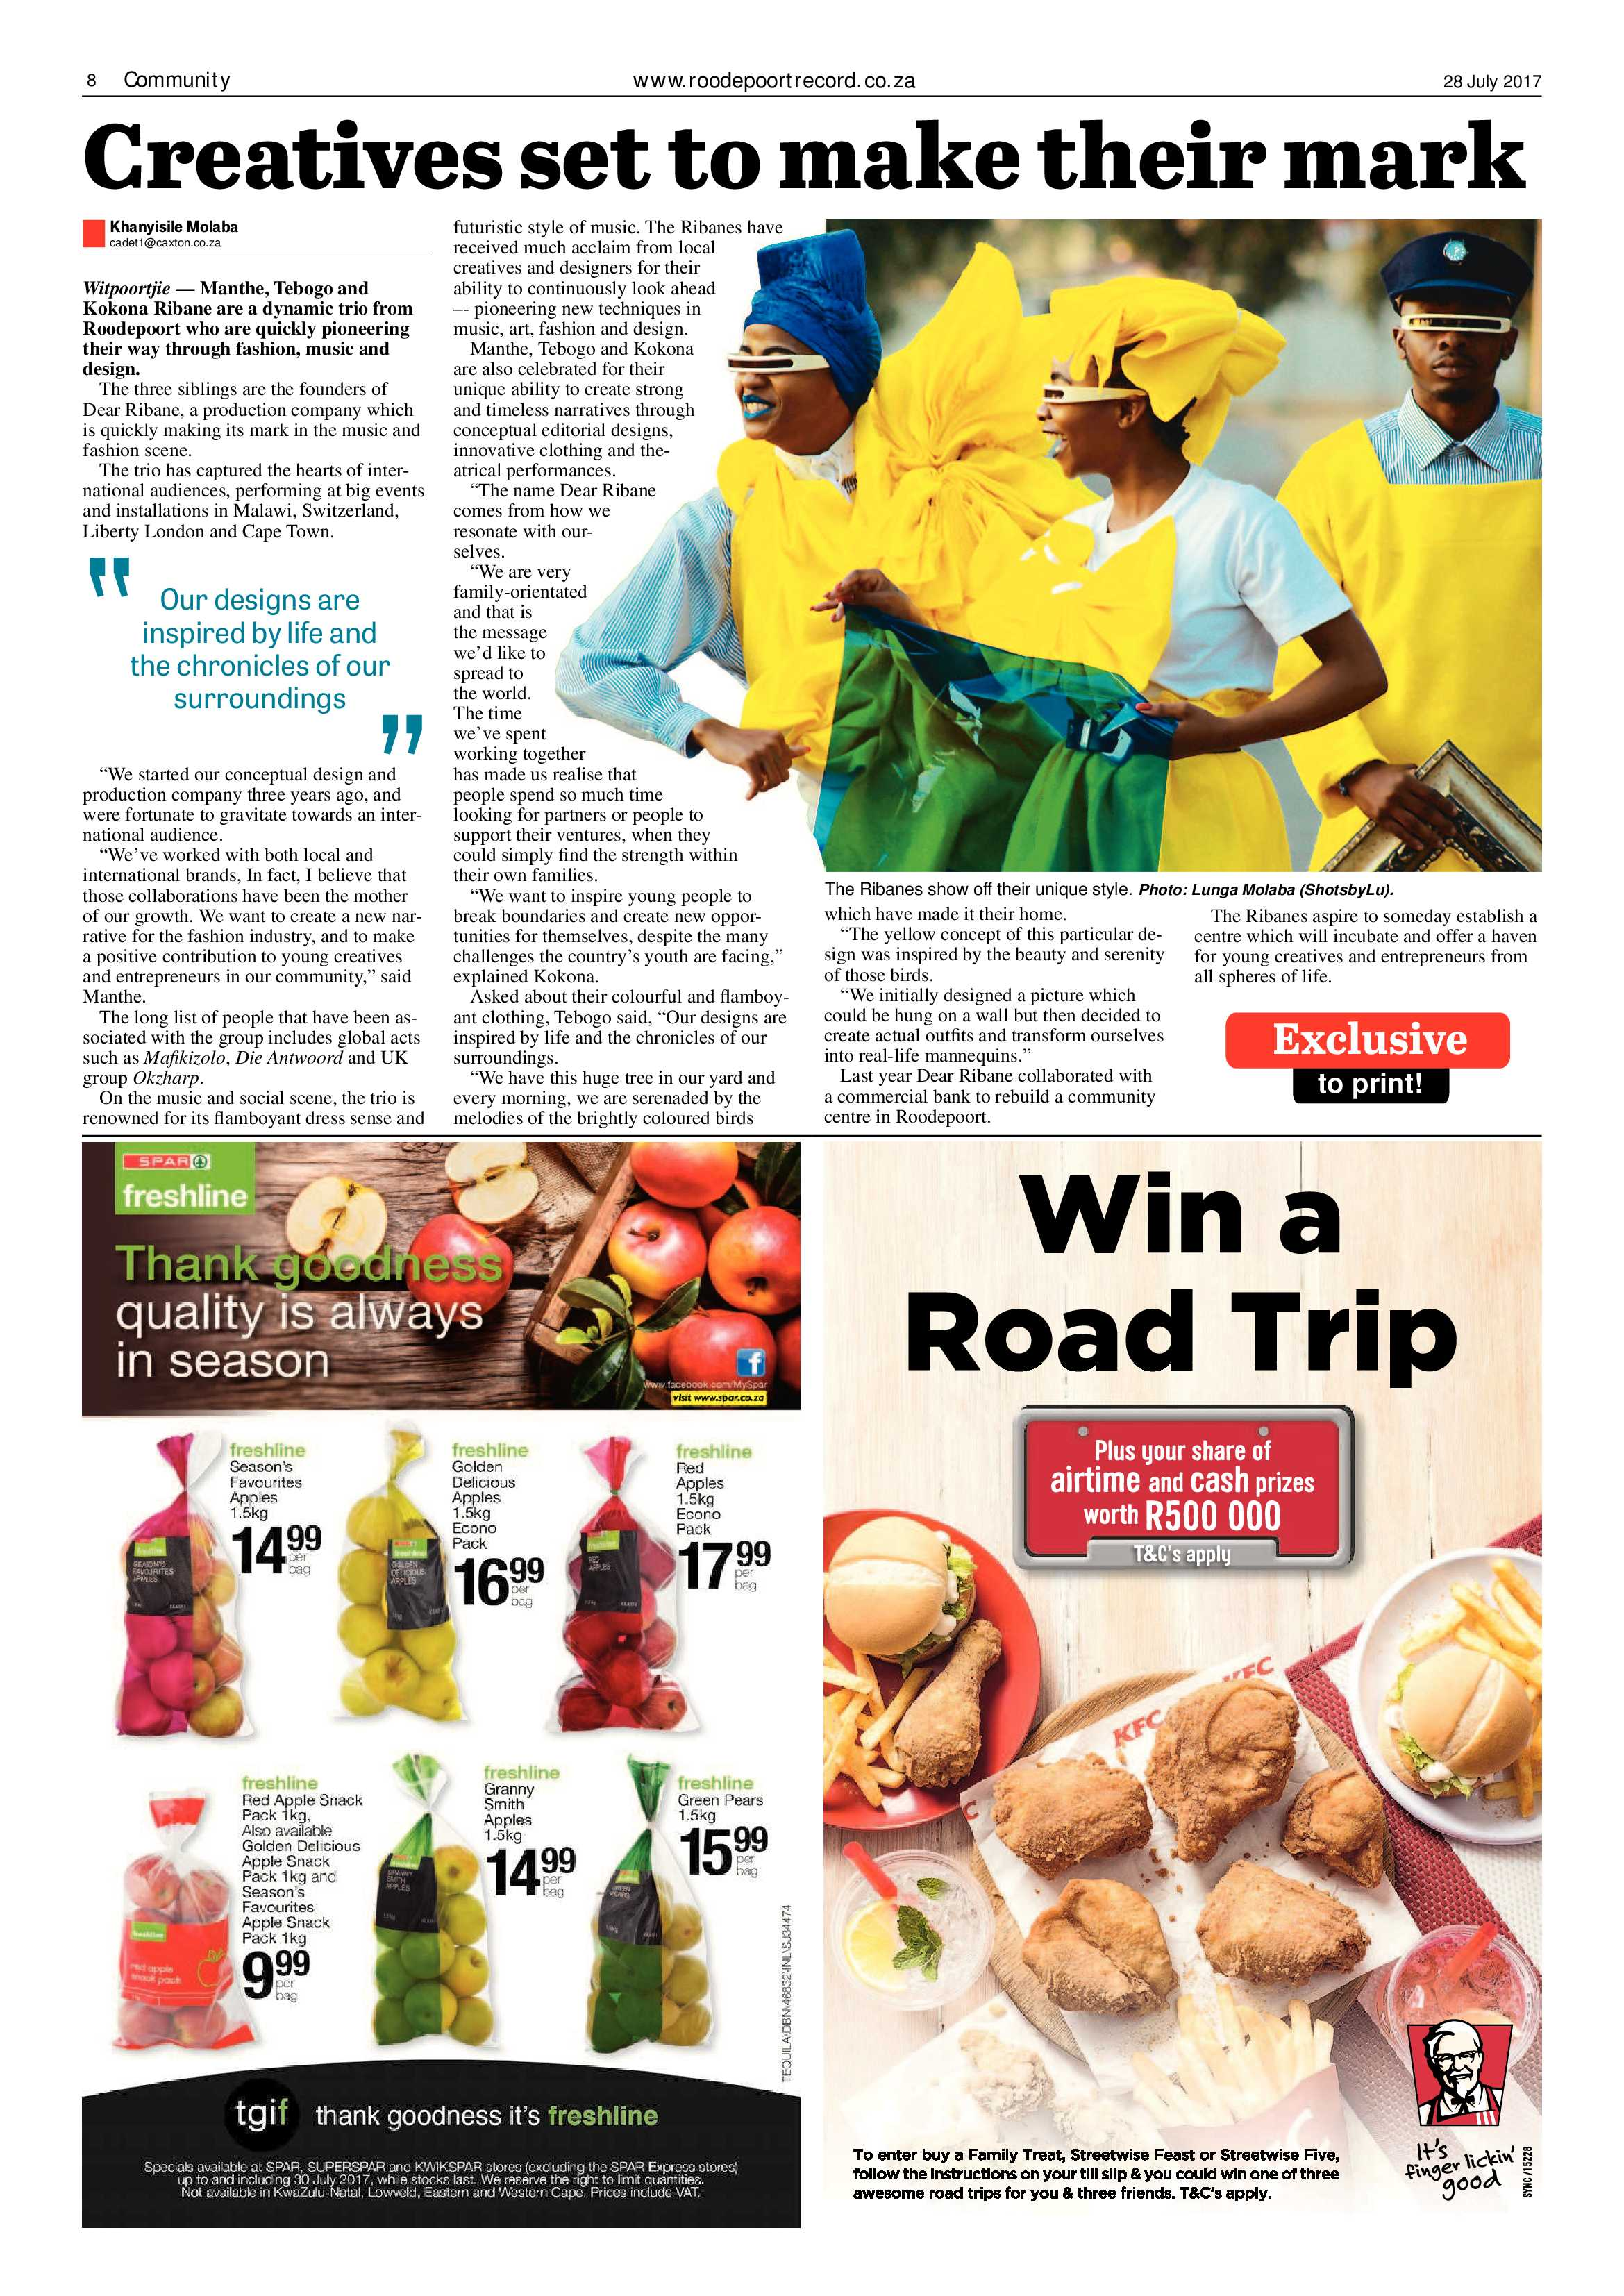 roodepoort-record-28-july-2017-epapers-page-8